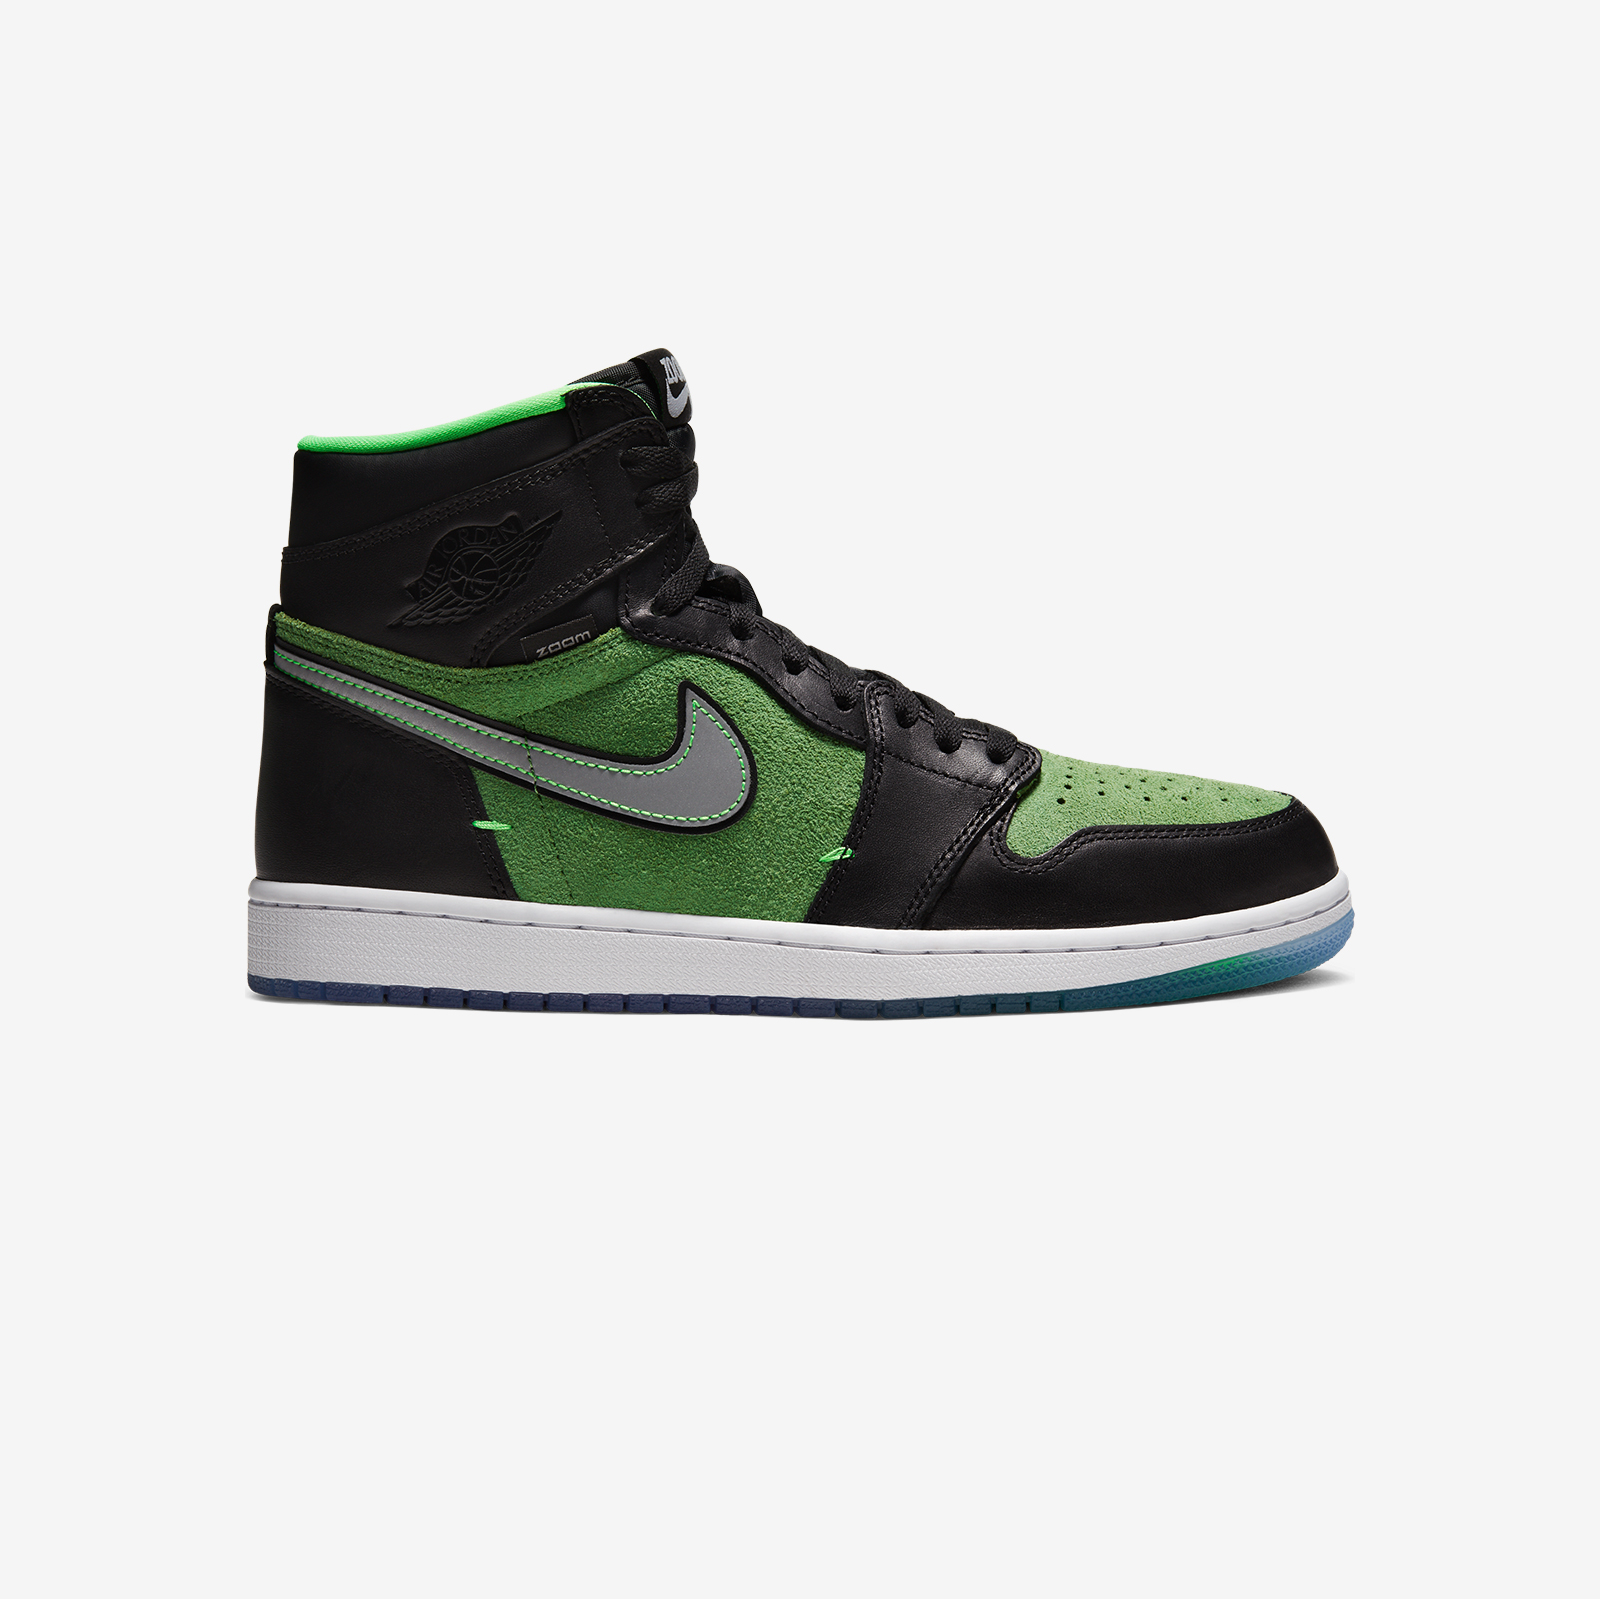 Jordan Brand Air Jordan 1 Hi Zoom Air Ck6637 002